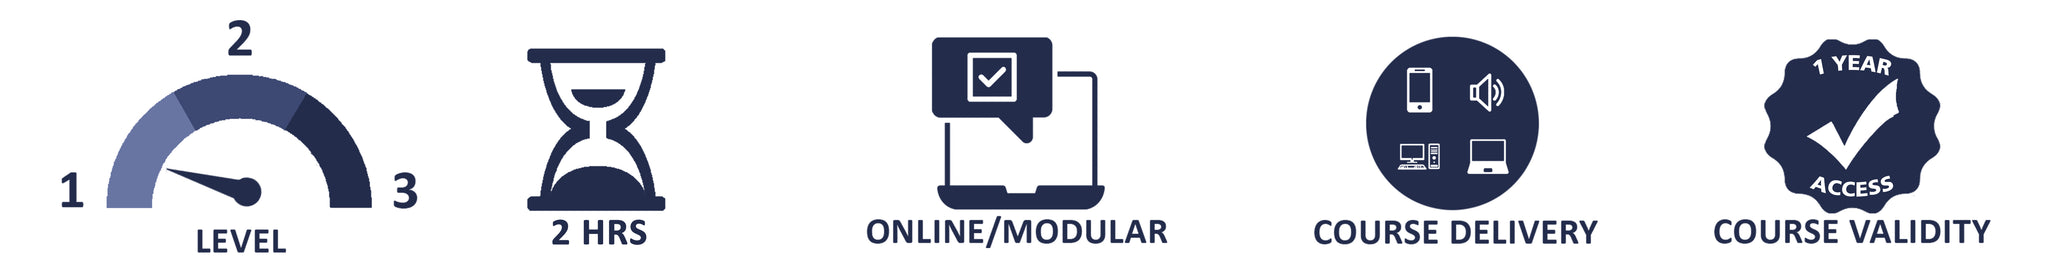 Care Certificate Standard 13 + Train the Trainer + Trainer Pack - Online CPD Course - The Mandatory Training Group UK -